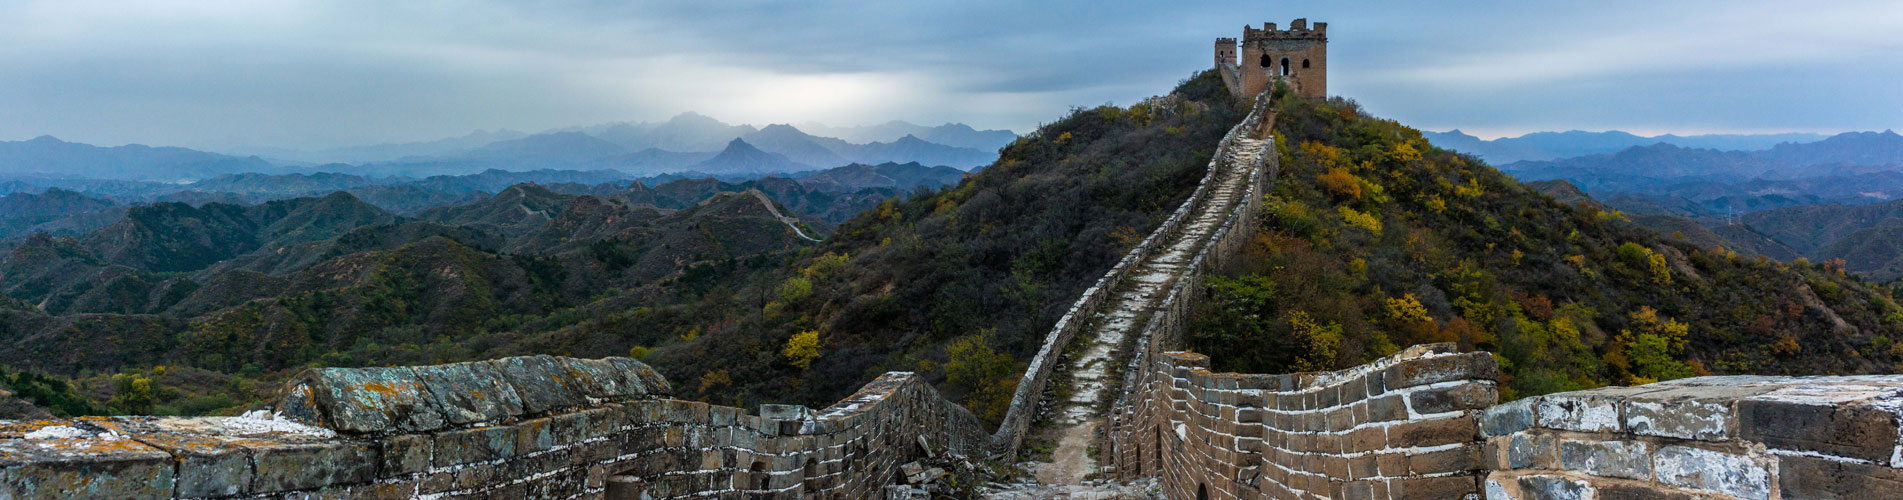 Hiking the ruined Jiankou Great Wall